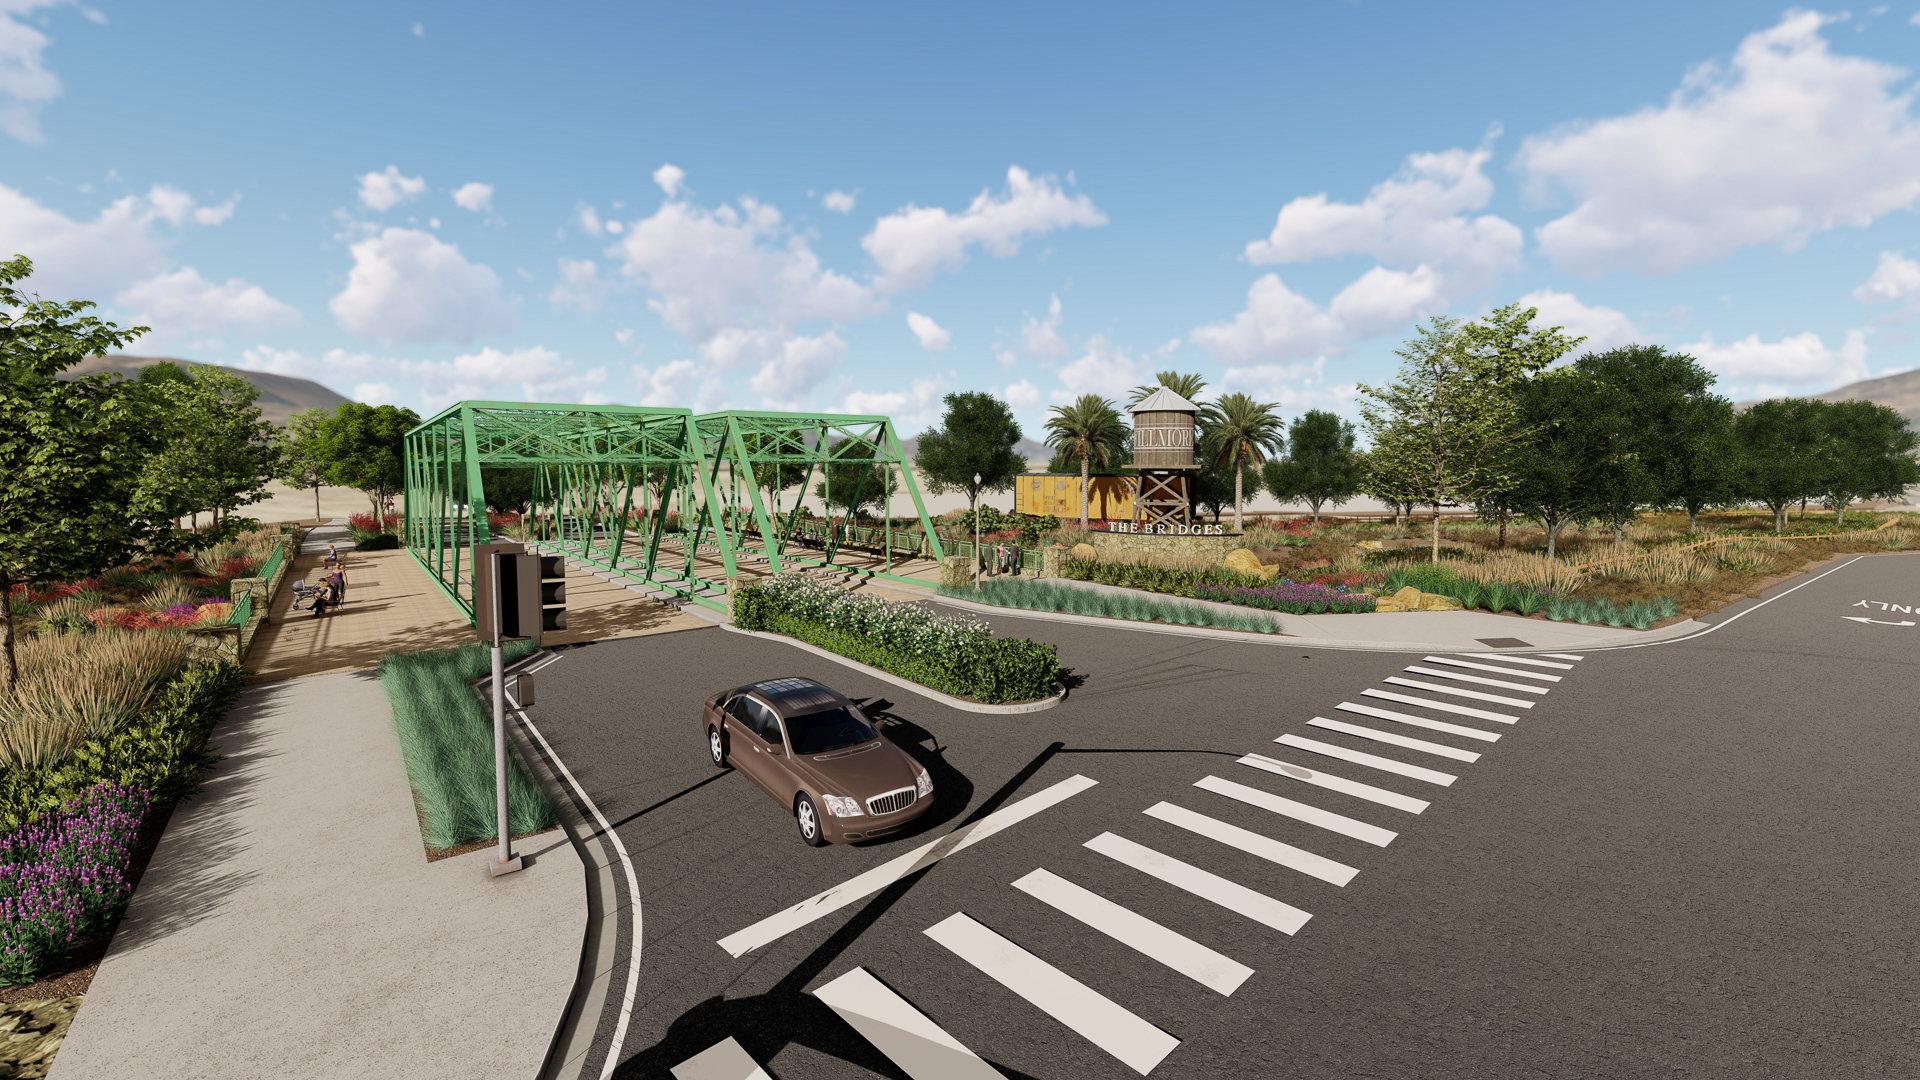 City Council Front Entry Renderings_02-Entering Bridges-Westbound.jpg